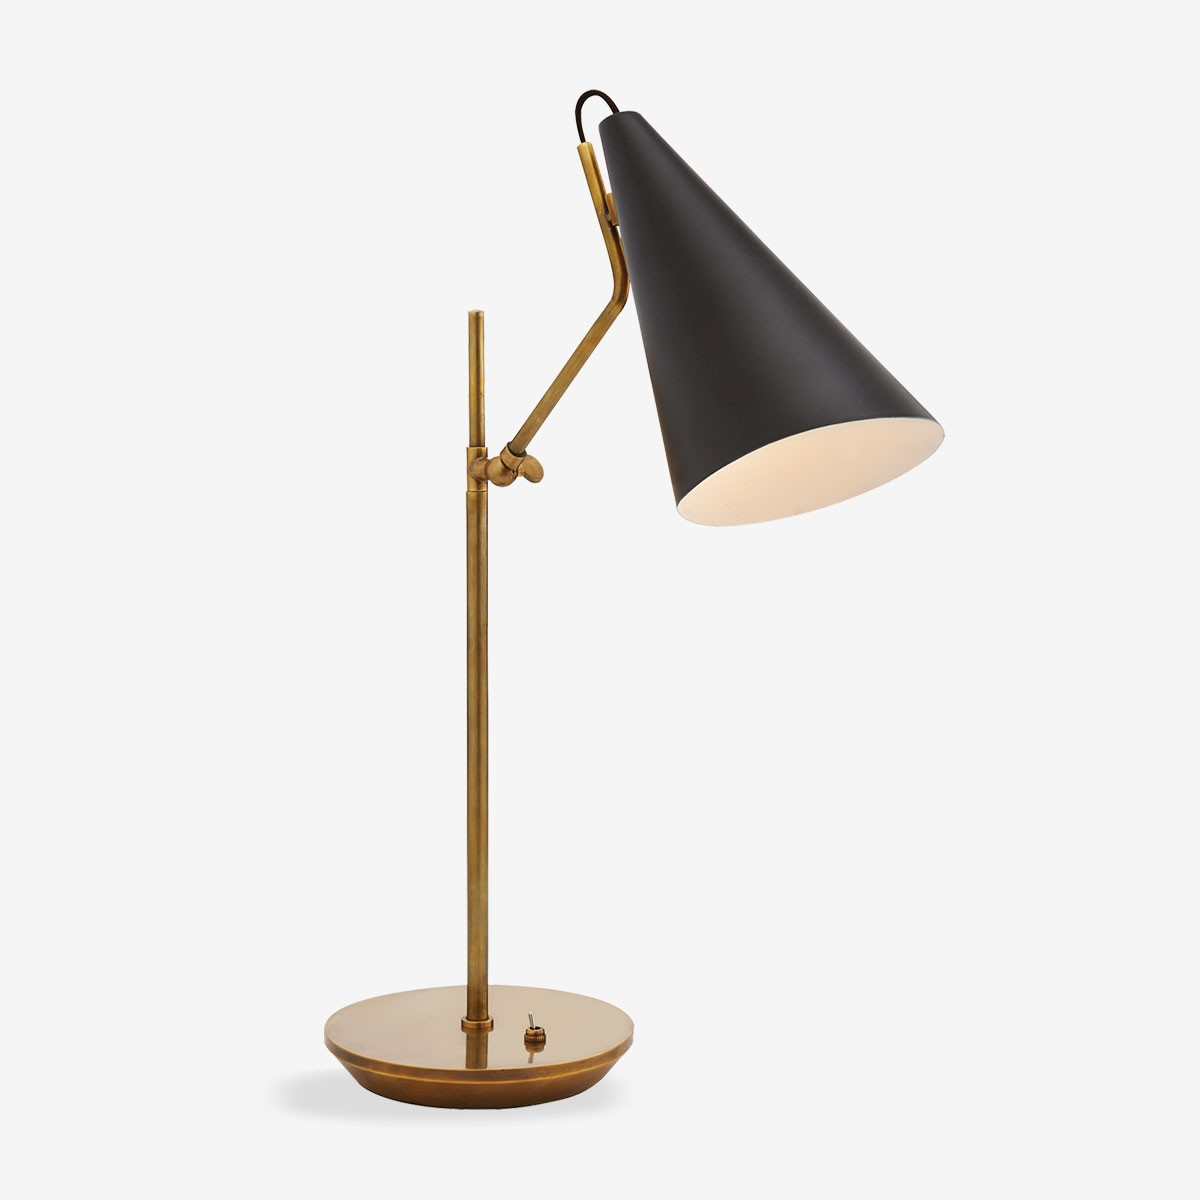 Studio Style Desk Lamp Black